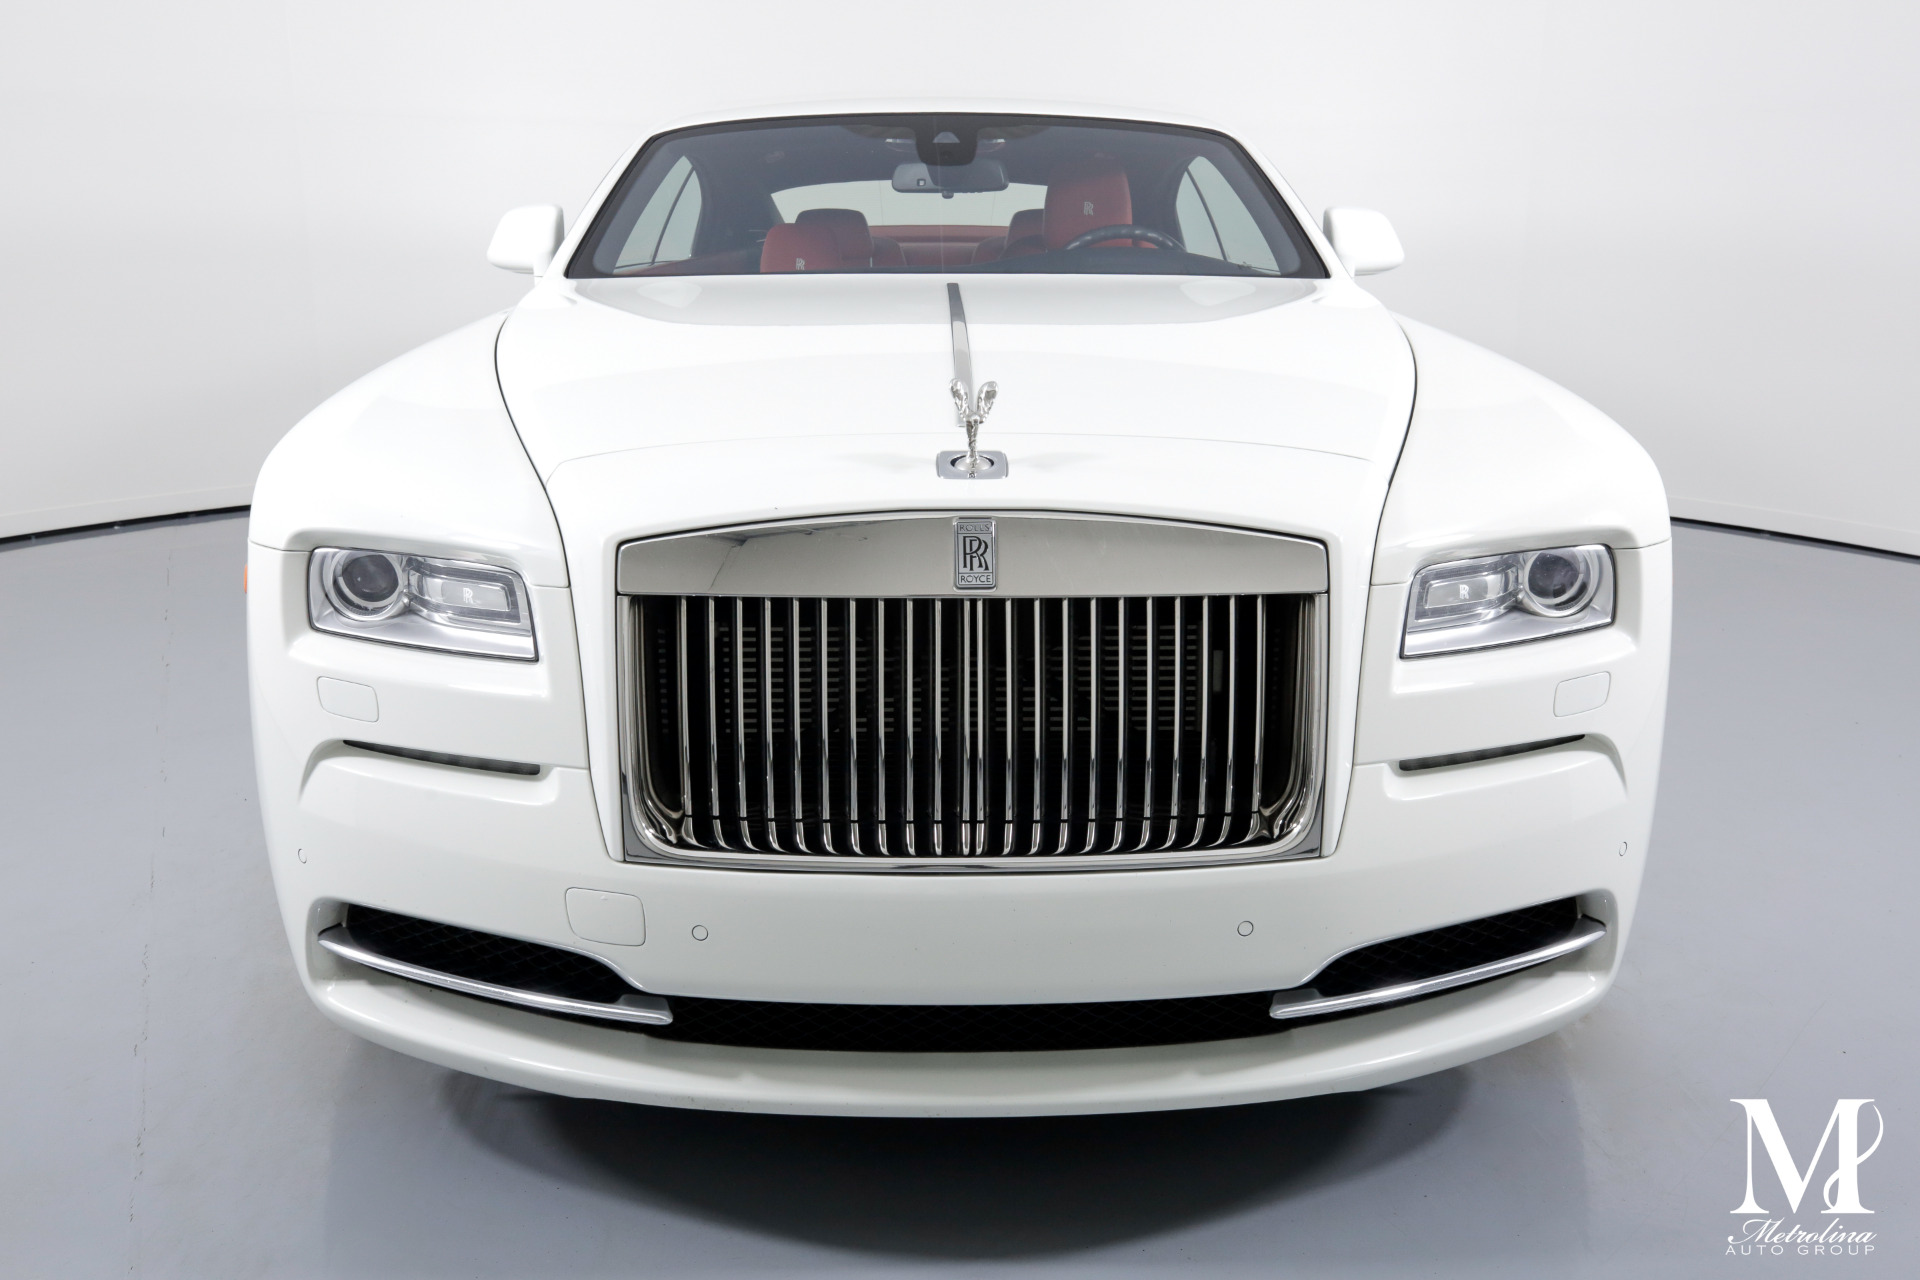 Used 2016 Rolls-Royce Wraith for sale $179,996 at Metrolina Auto Group in Charlotte NC 28217 - 3